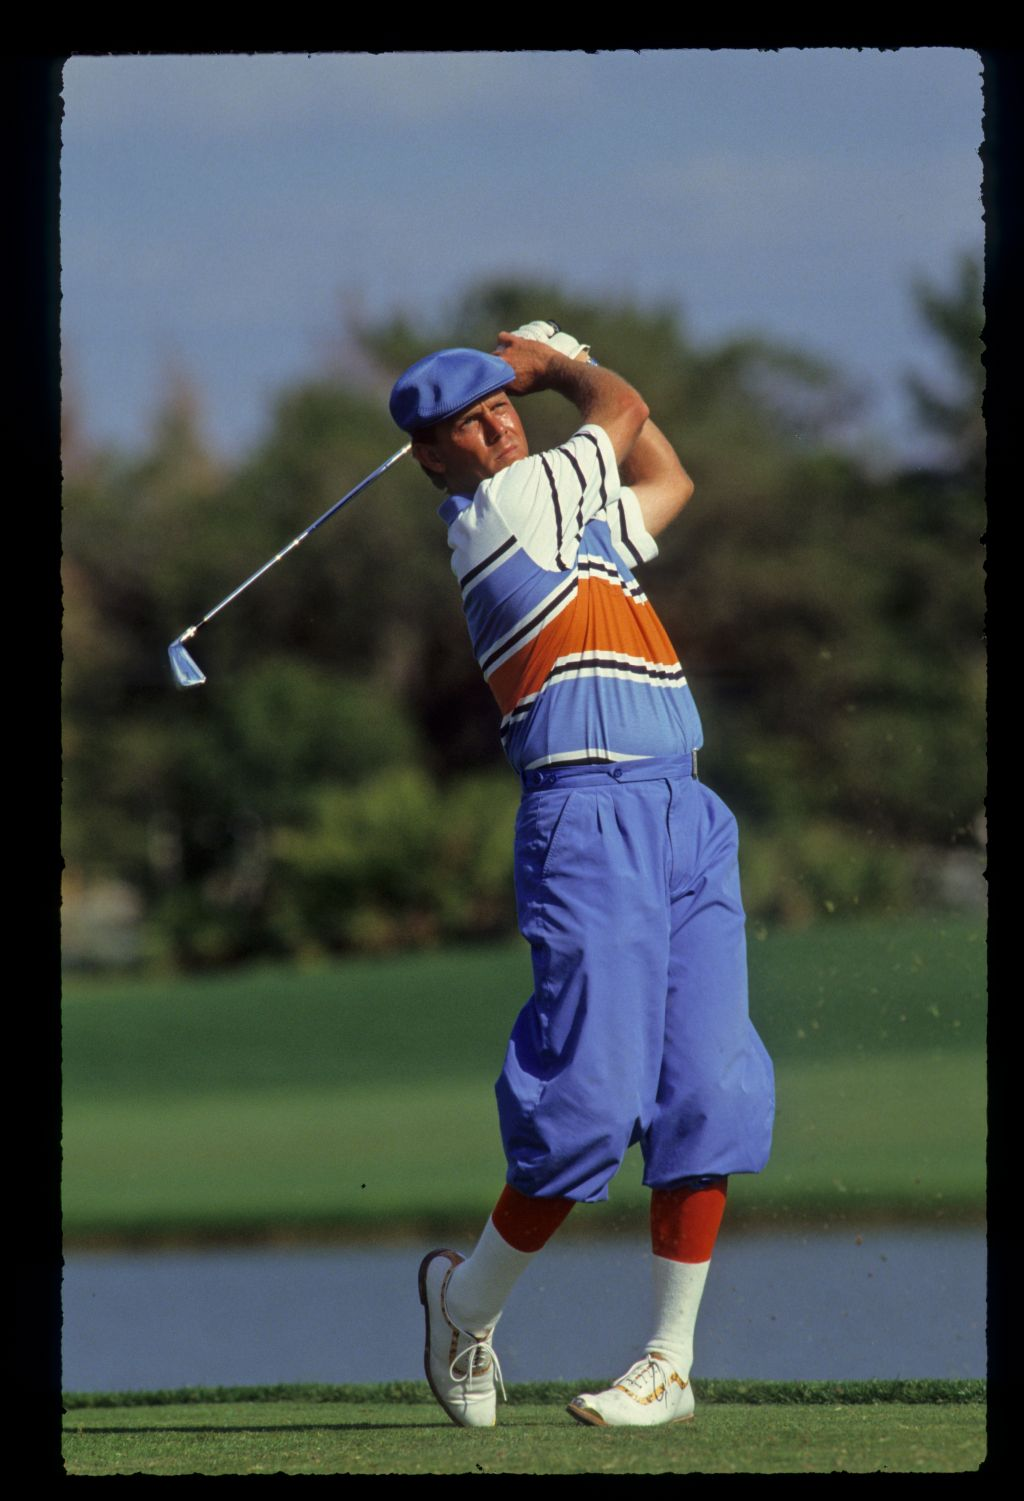 Golfer Payne Stewart shows form at the 1990 Bay Hill Nestle Invitational